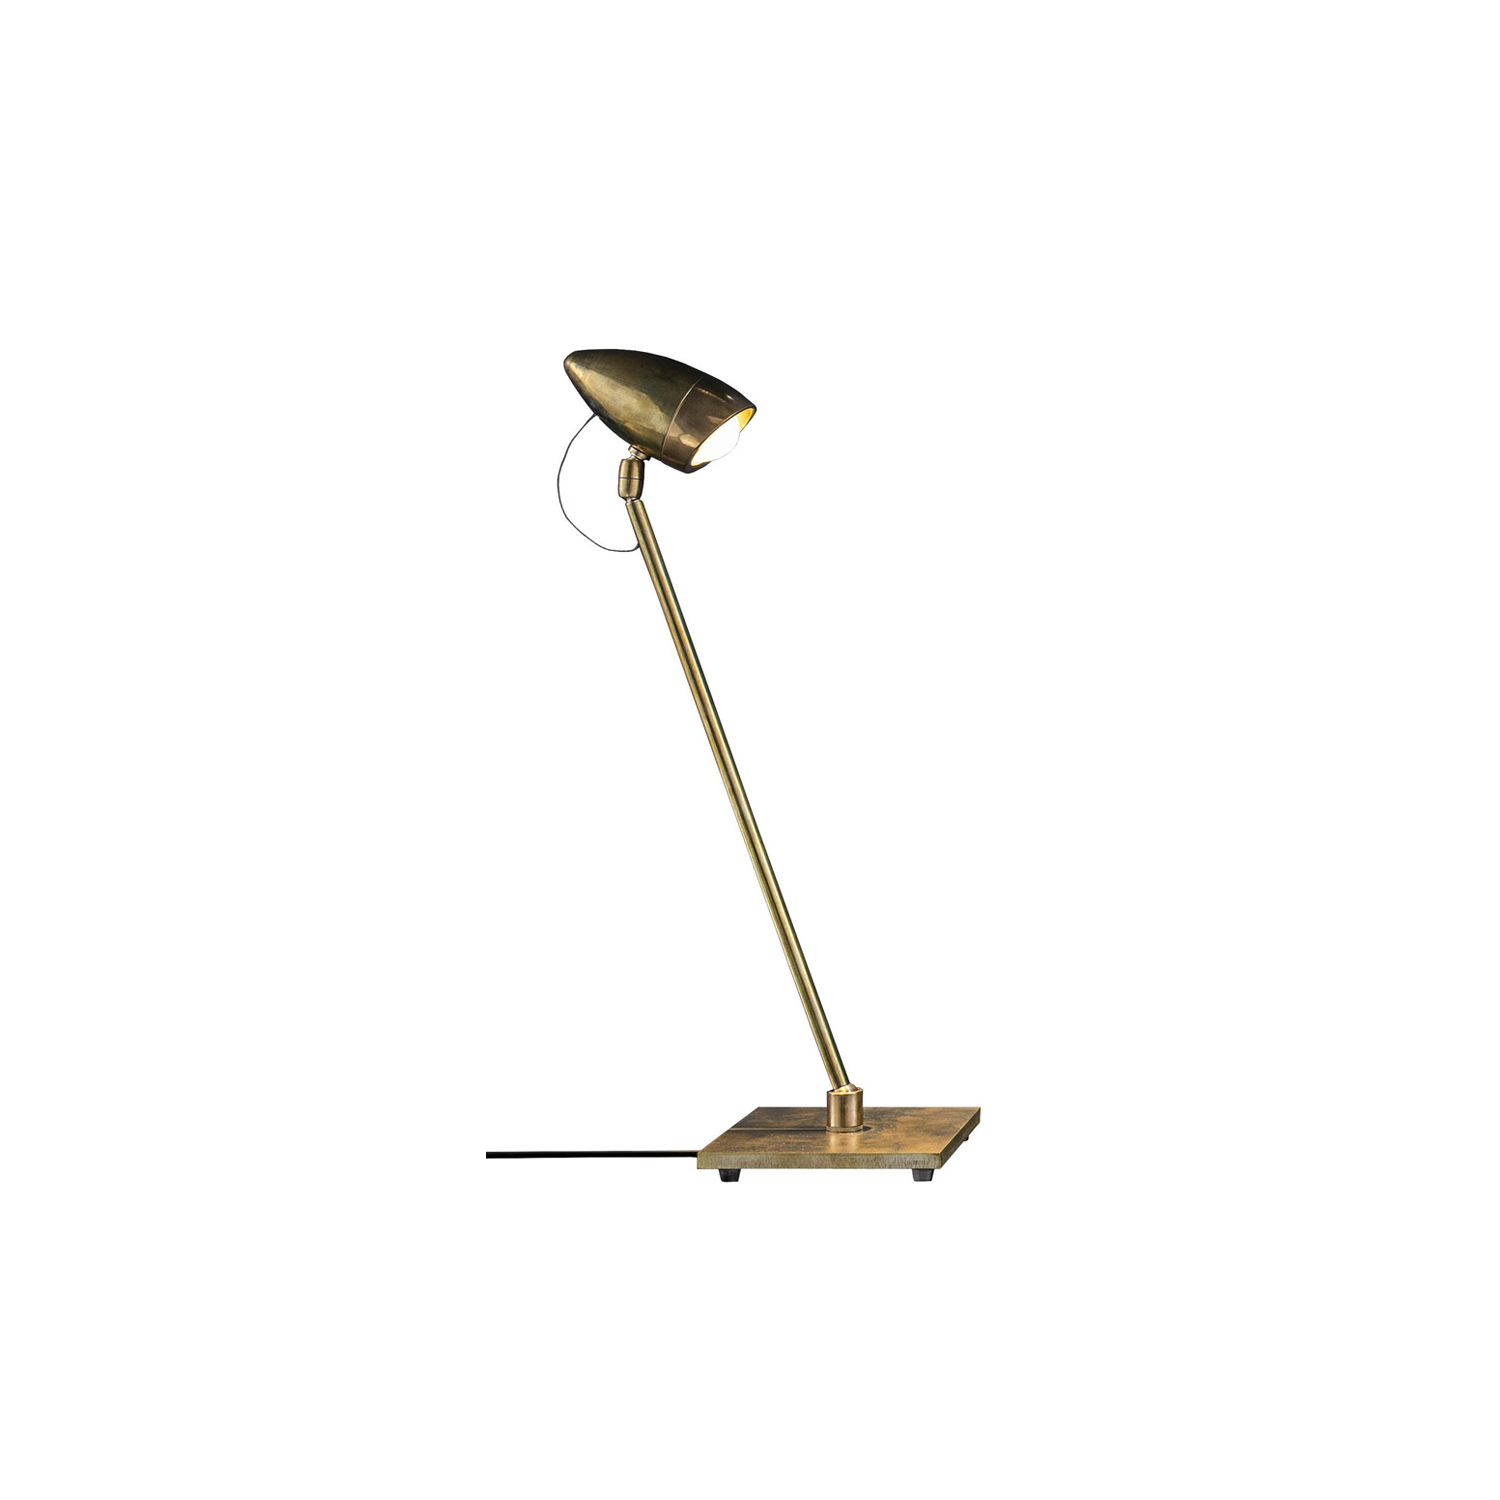 CicloItalia T Table Lamp - A light from the past. CicloItalia is the natural evolution of Ciclocina, our classic lamp from 1989. Made entirely of hand-crafted brass, it is available in two versions: floor and table. A timeless icon from Catellani & Smith, yesterday and today. | Matter of Stuff